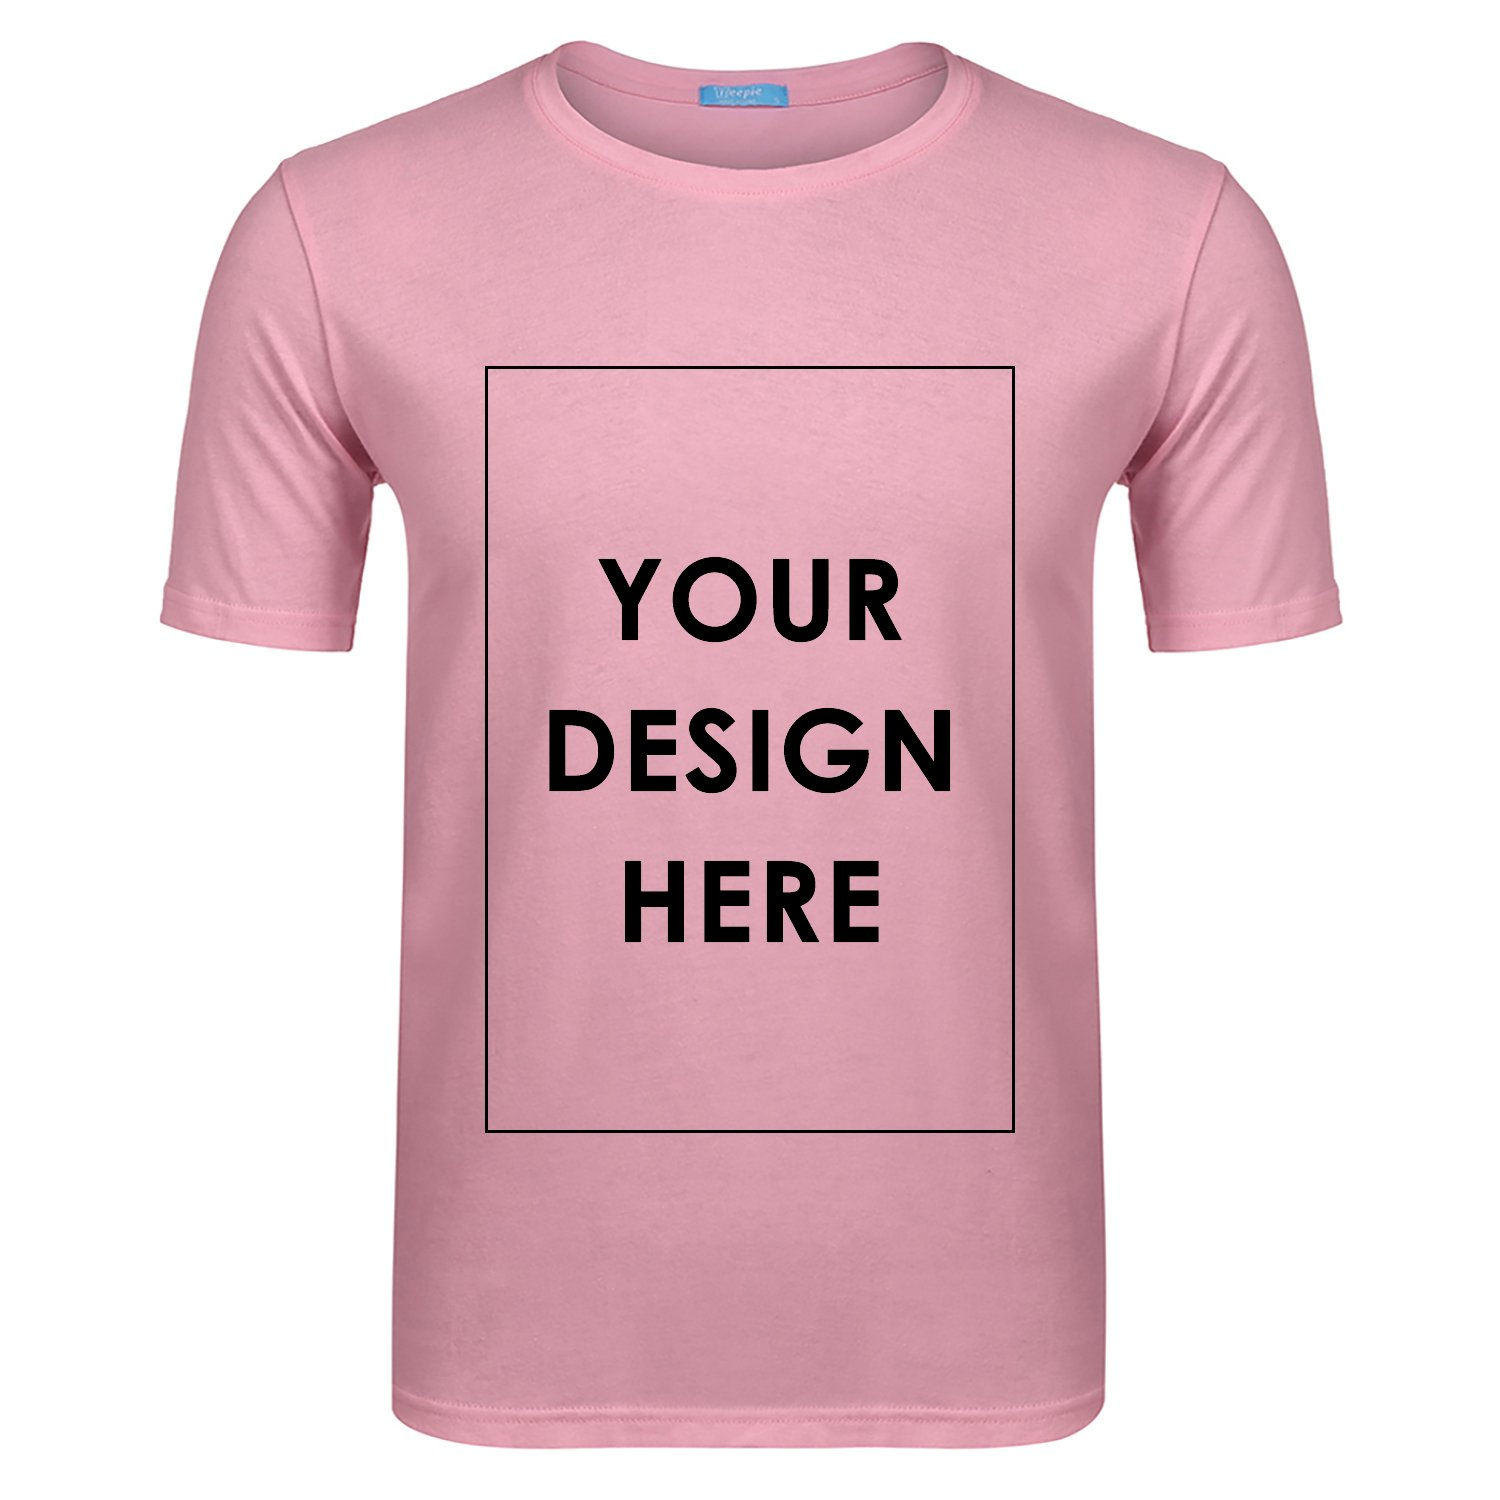 ef9c7fb4 Custom T-Shirt:Dear friend,welcome to our store,we are a professional  custom shop,we have variety of colors and different pattern available to  express your ...